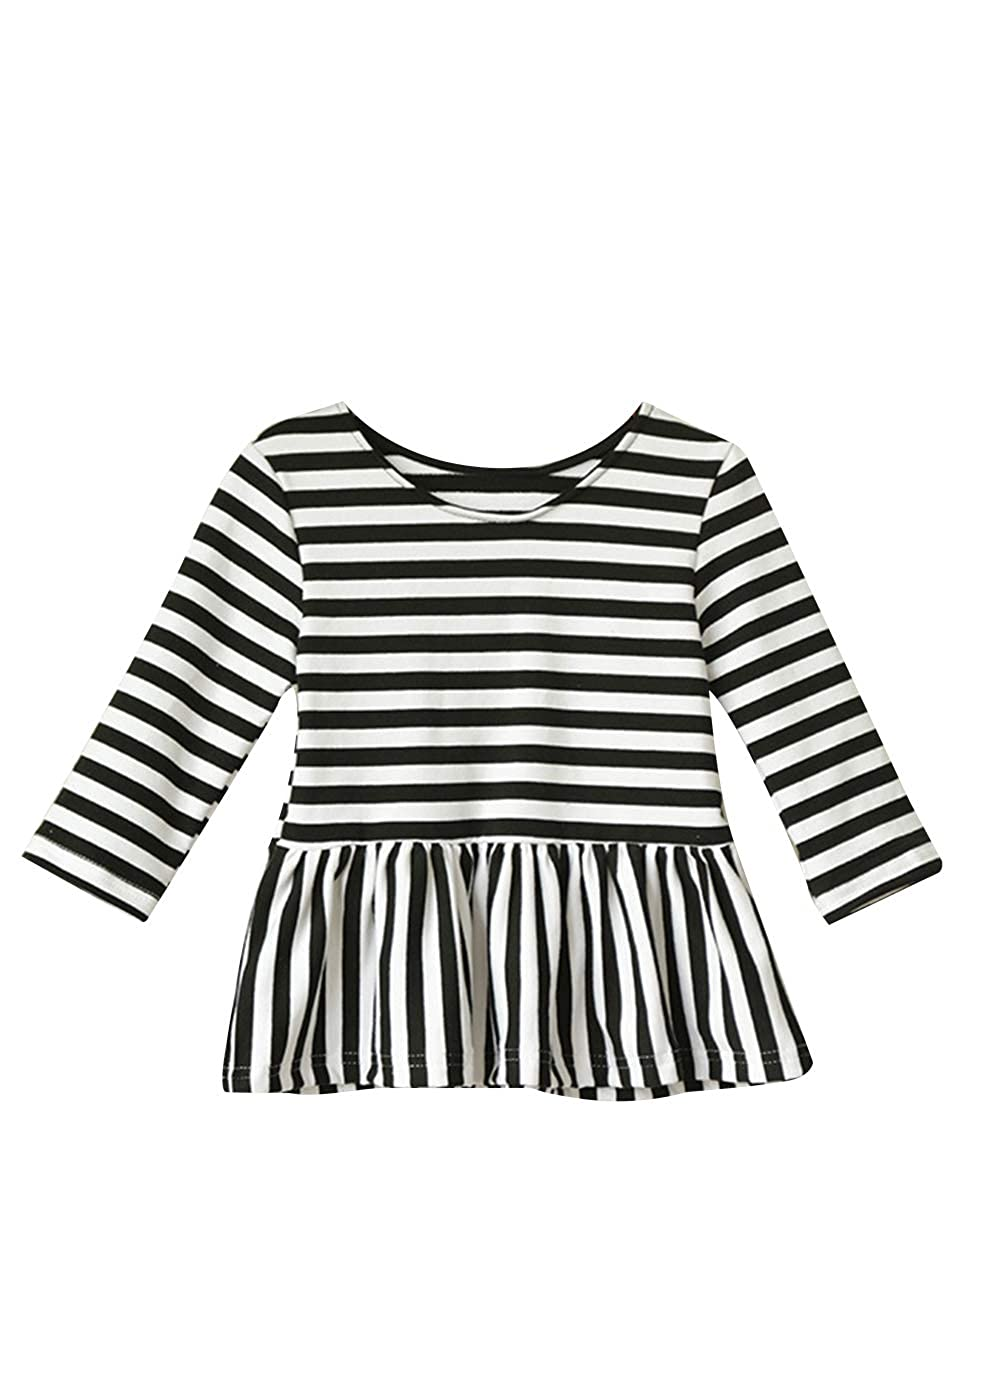 YMING Girls Round Neck 3//4 Sleeve Casual Printed Striped Cute Top Tee Shirt